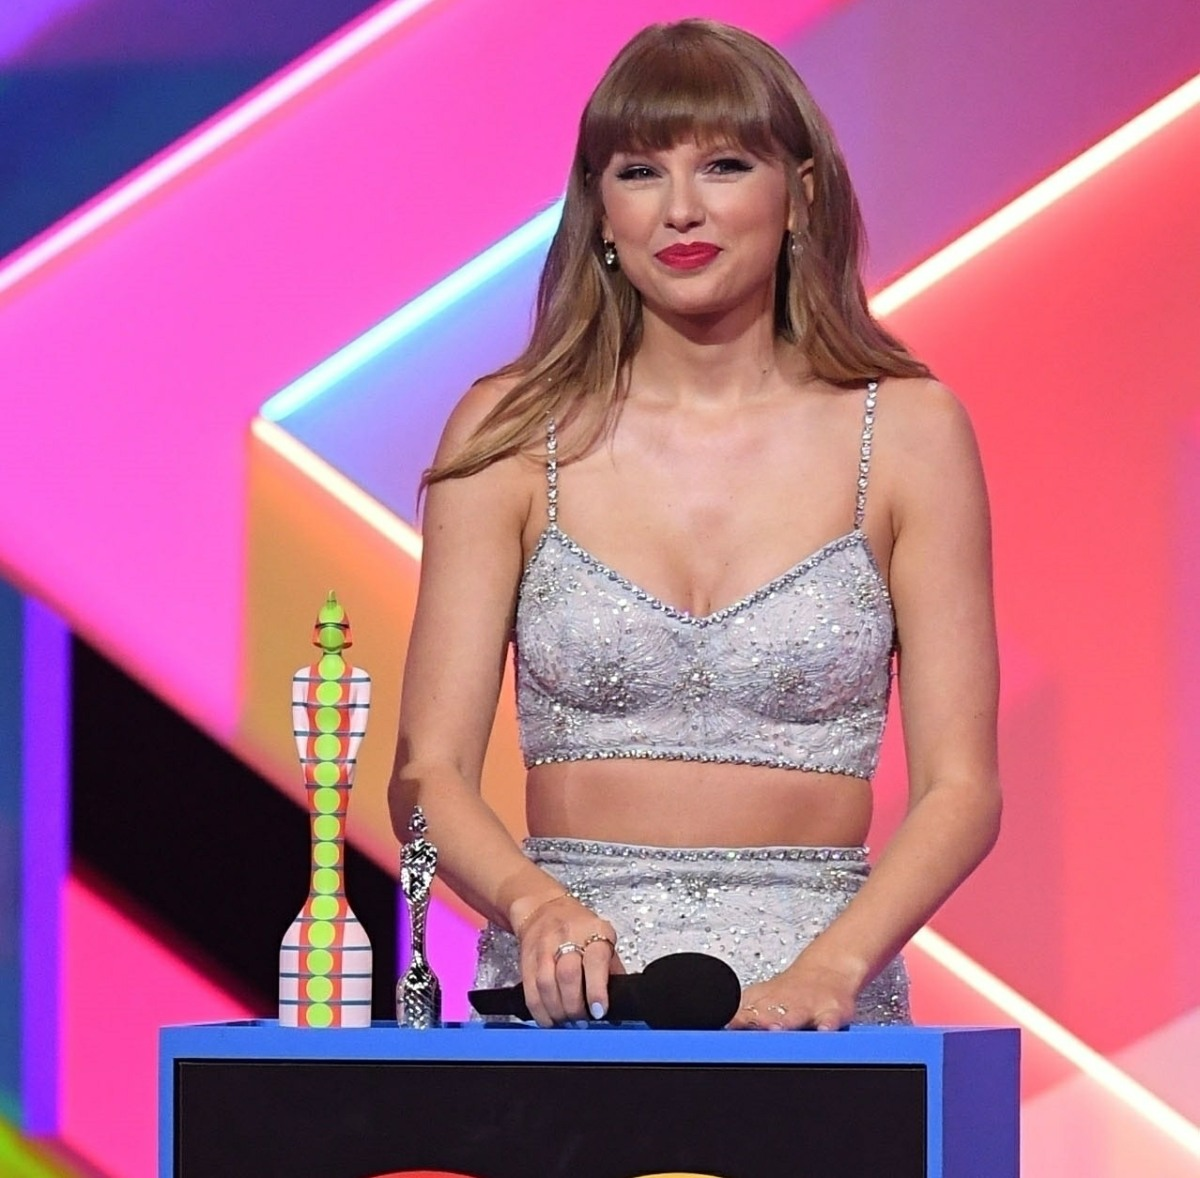 The BRIT Awards 2021 at The O2 Arena in London, England